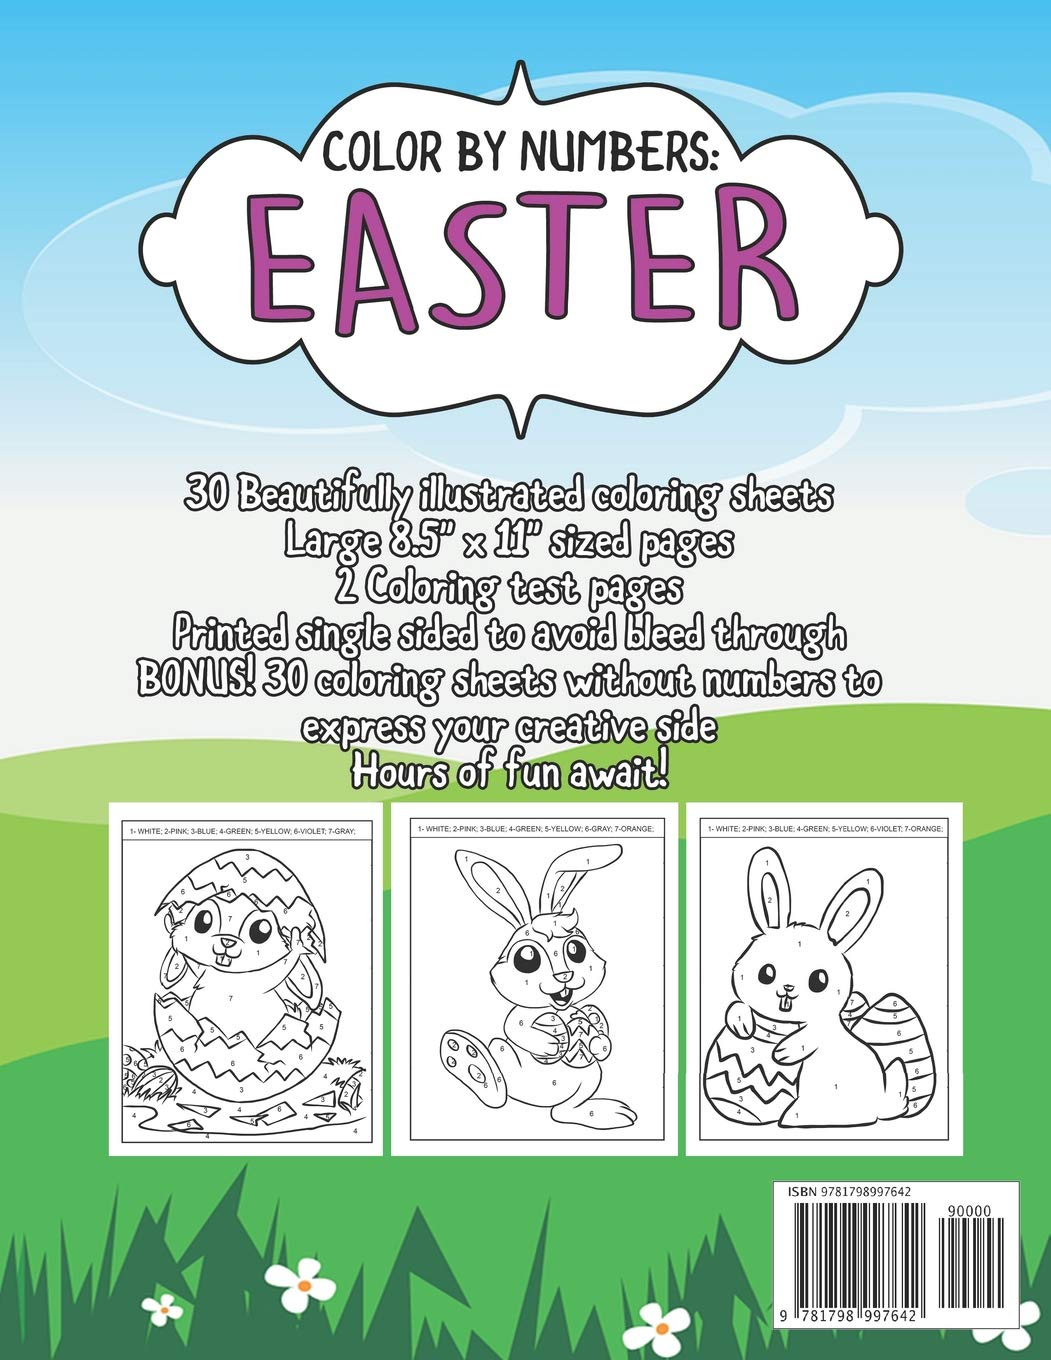 20 Best Easter Coloring Pages for Kids - Easter Crafts for Children | 1360x1051